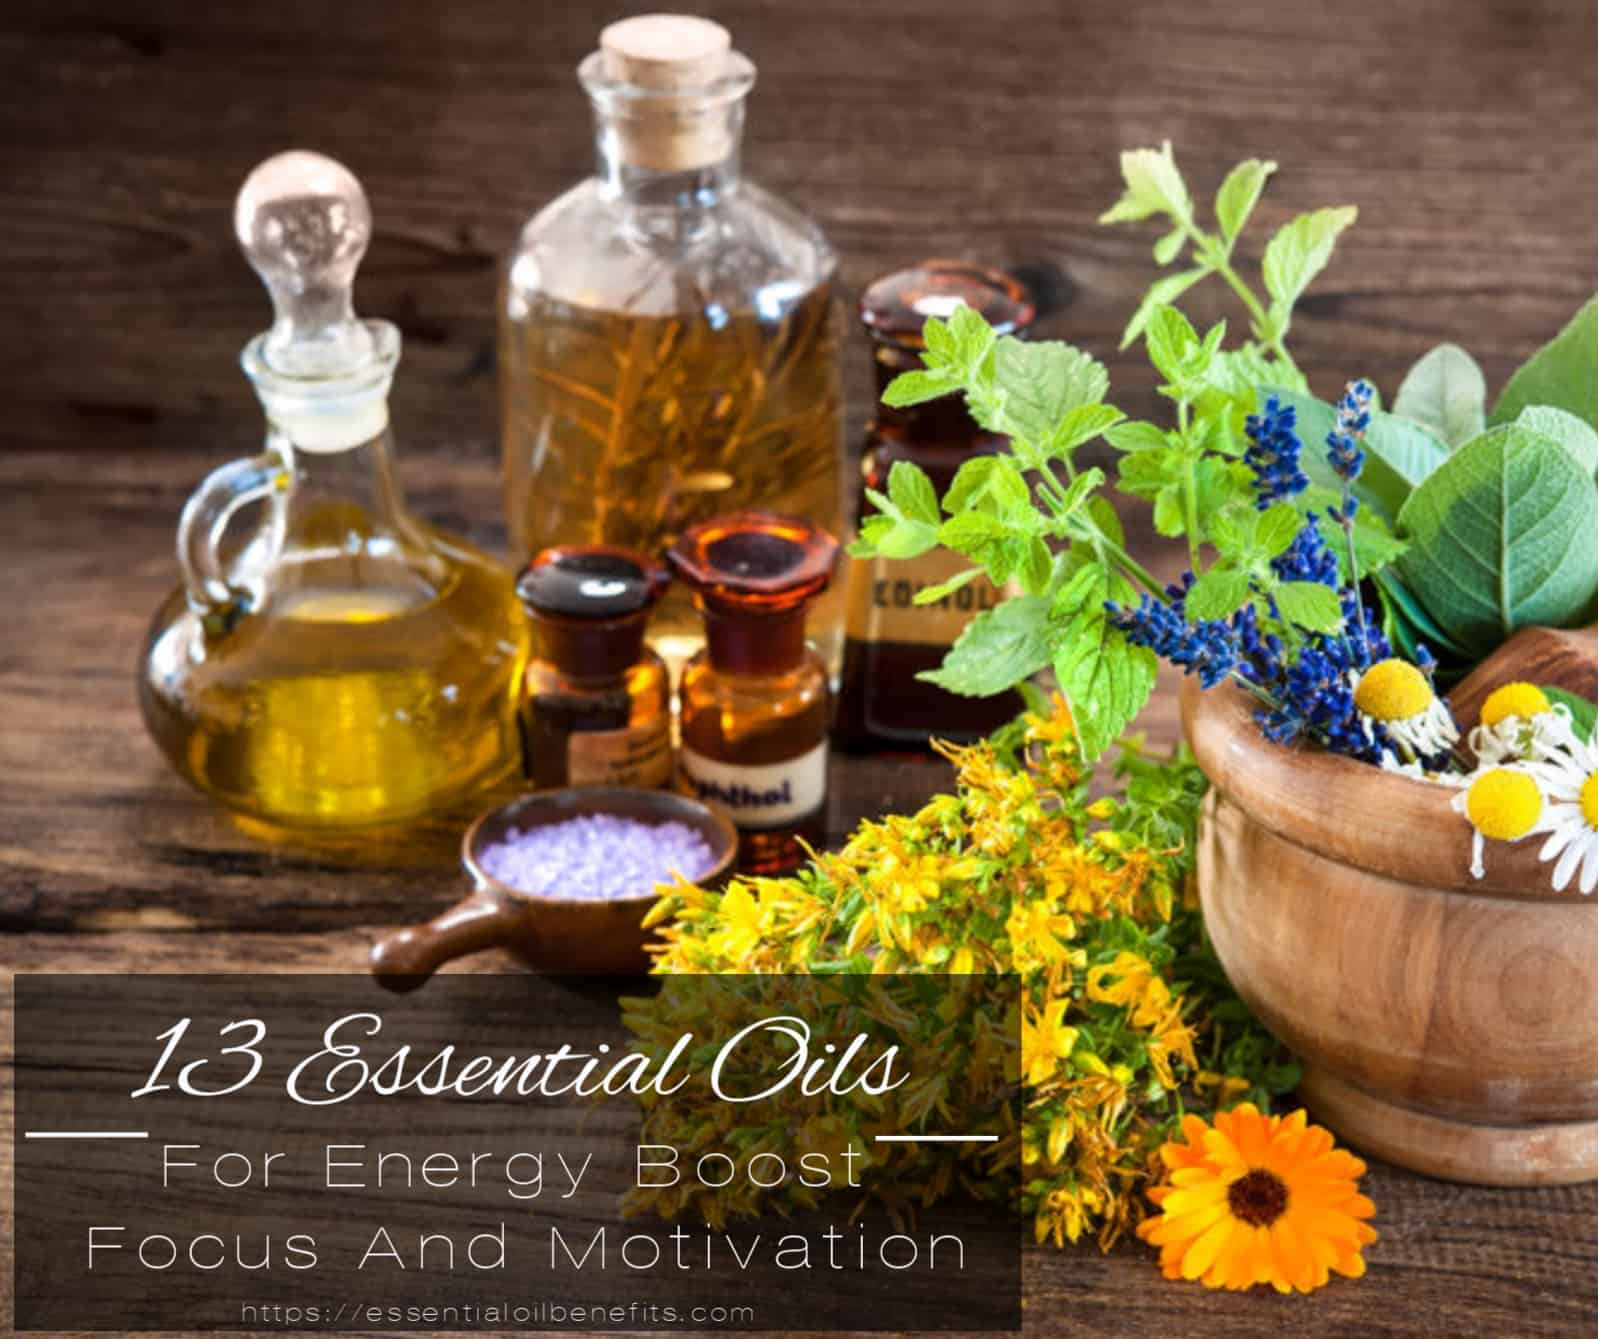 13 Best Essential Oils And 5 Recipes For Energy Boost Focus And